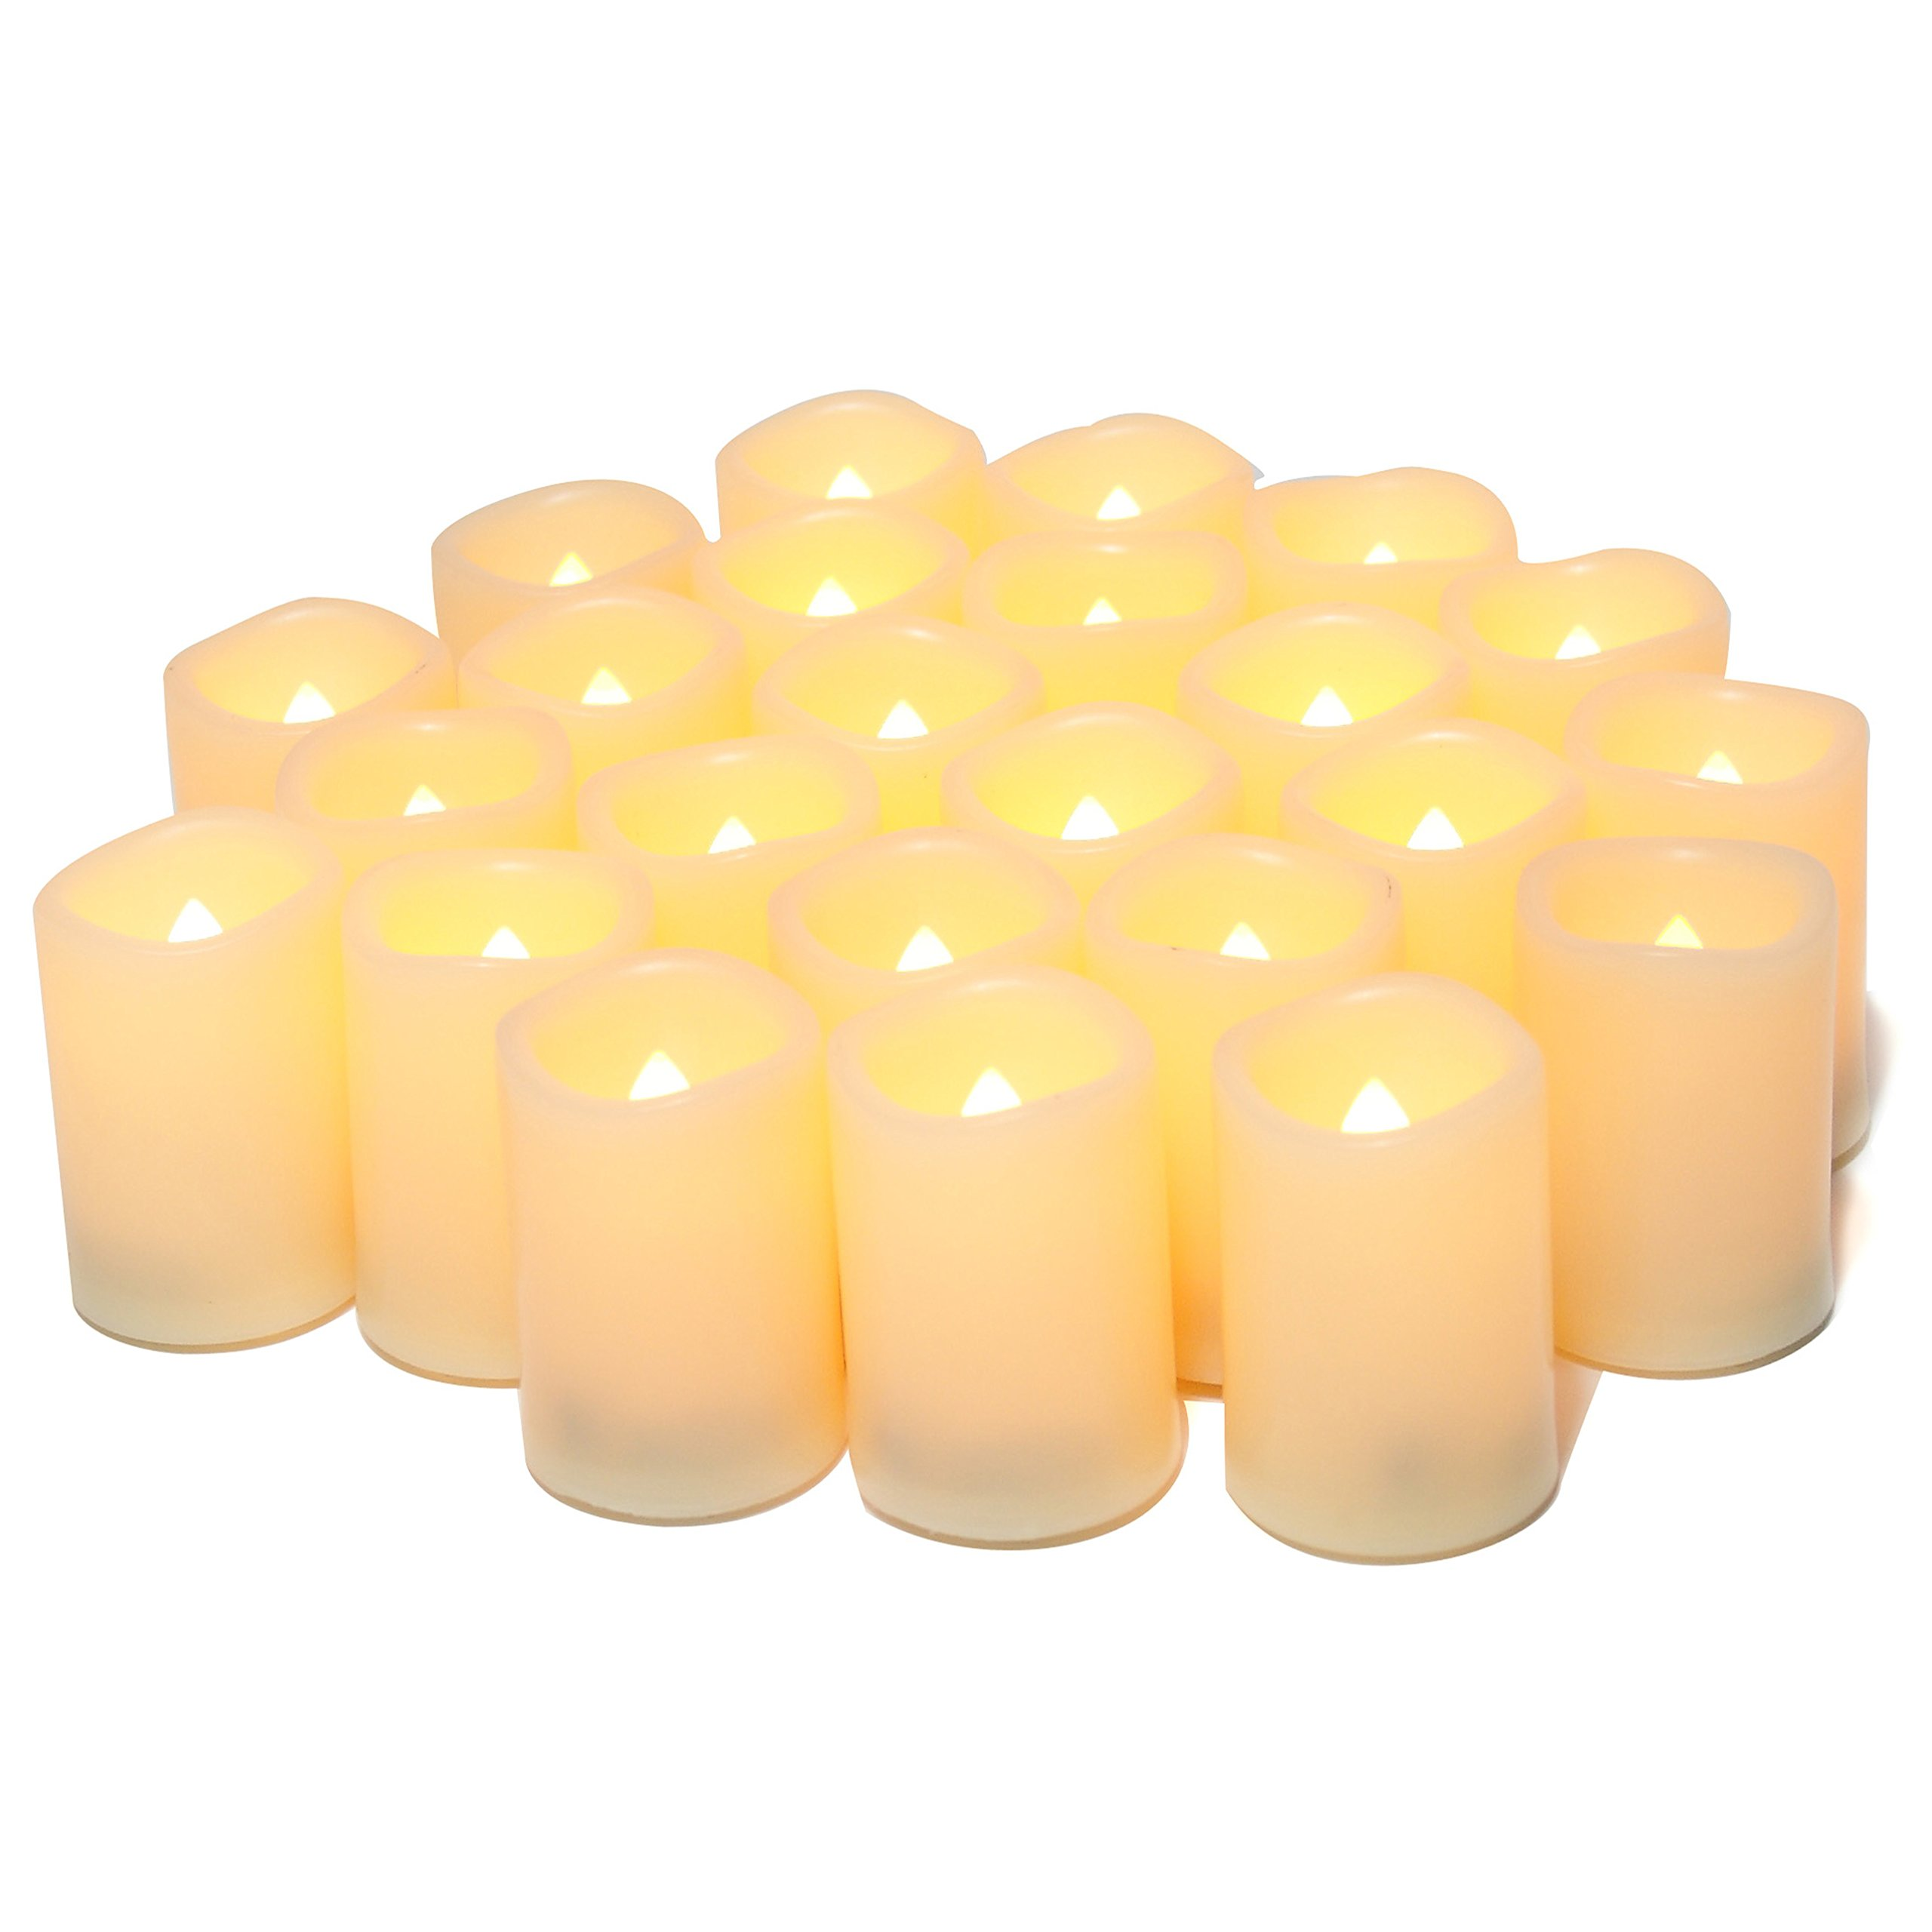 Flameless Flickering Votive Tea Lights Candles Bulk Battery Operated Set of 24 Fake Candles/Flickering Tealights LED Candle for Garden Wedding,Party, Christmas Decorations etc (Batteries Included) by CANDLE IDEA